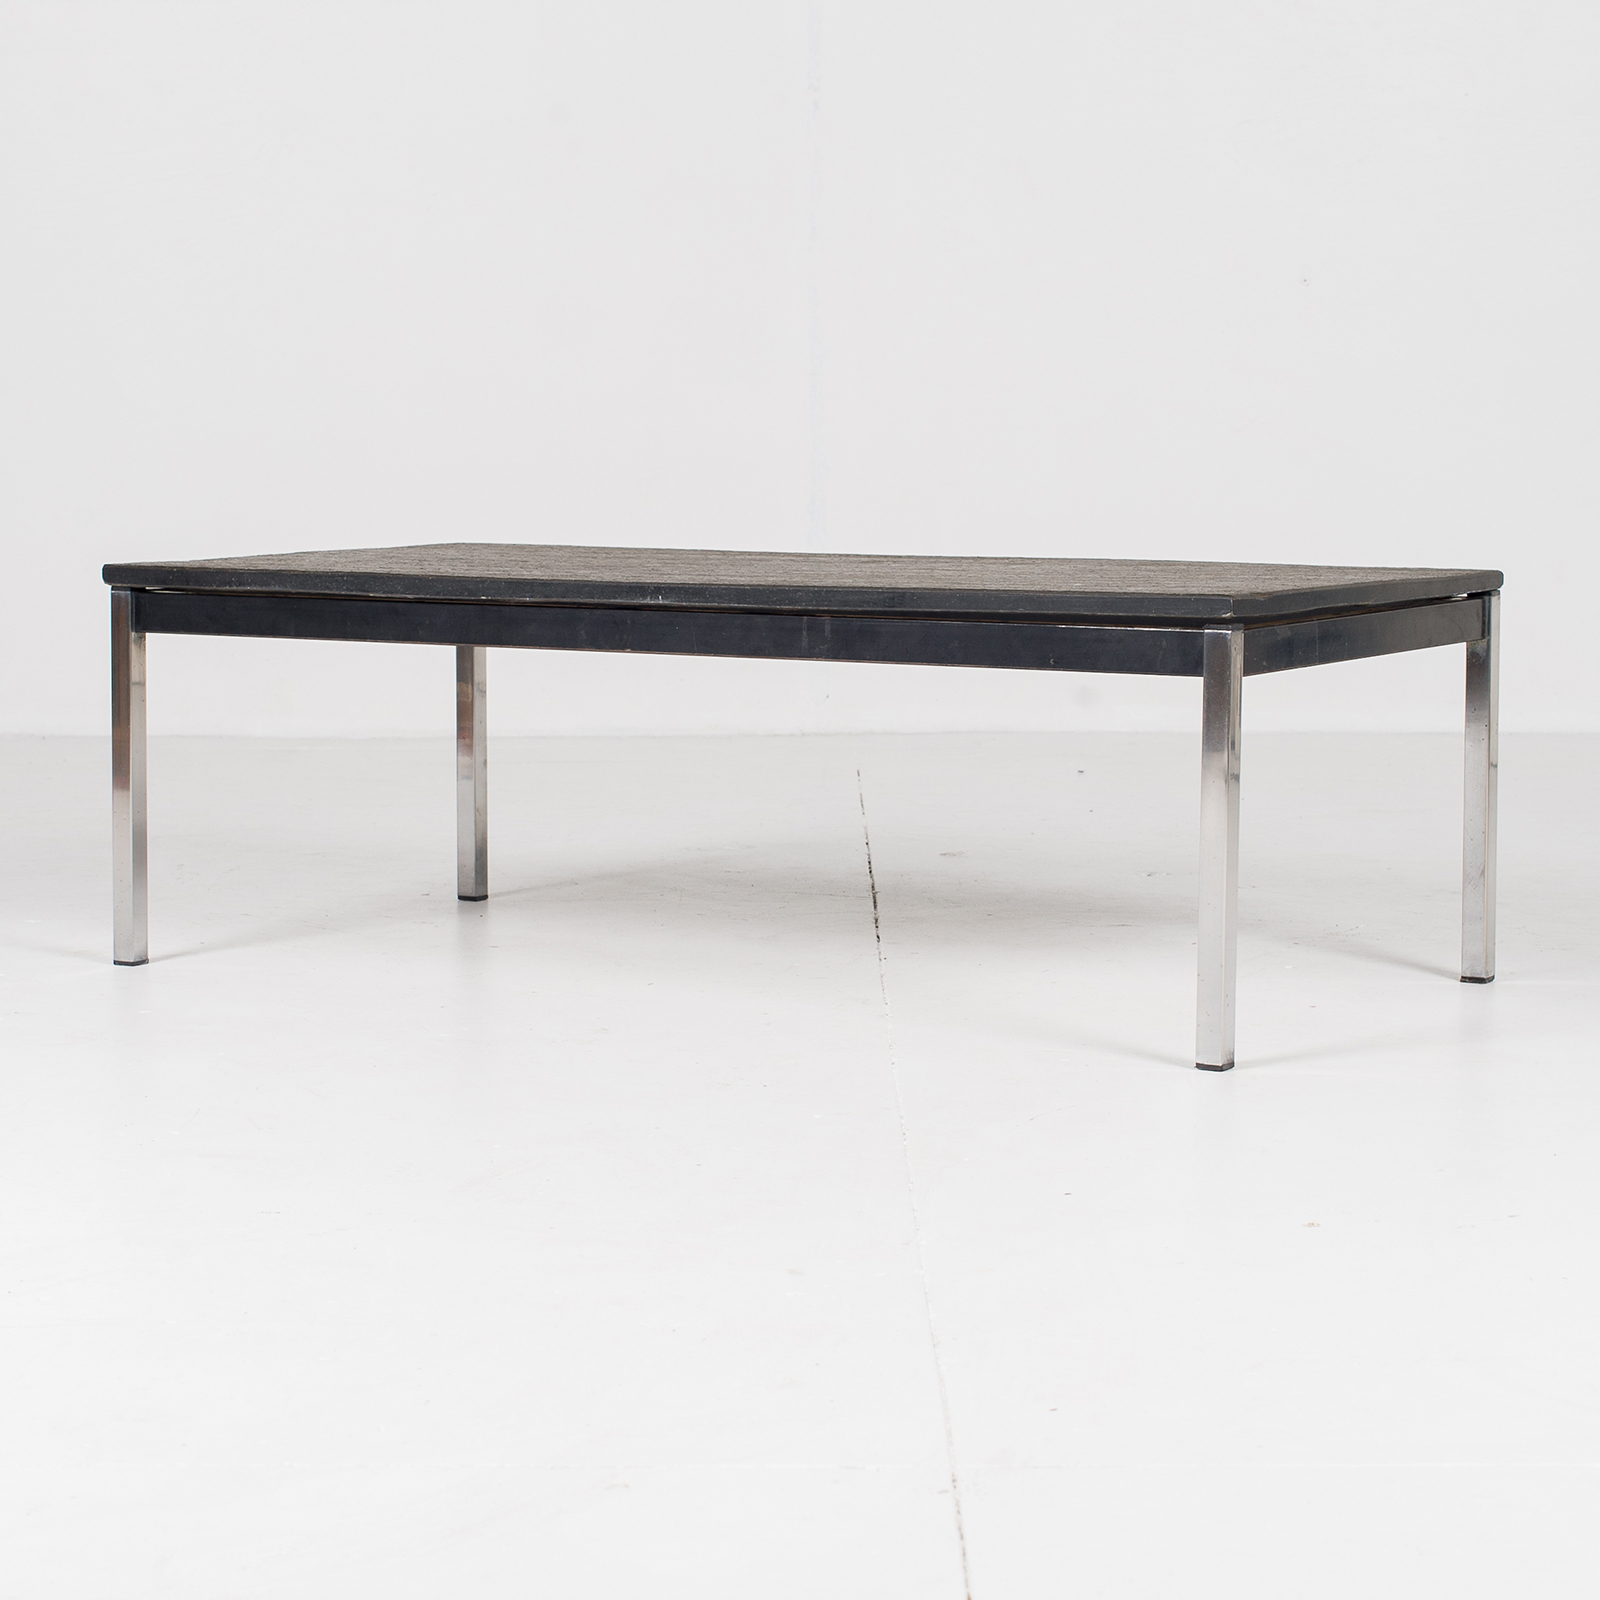 Coffee Table With Slate Top By Martin Visser, 1950s, The Netherlands 3056